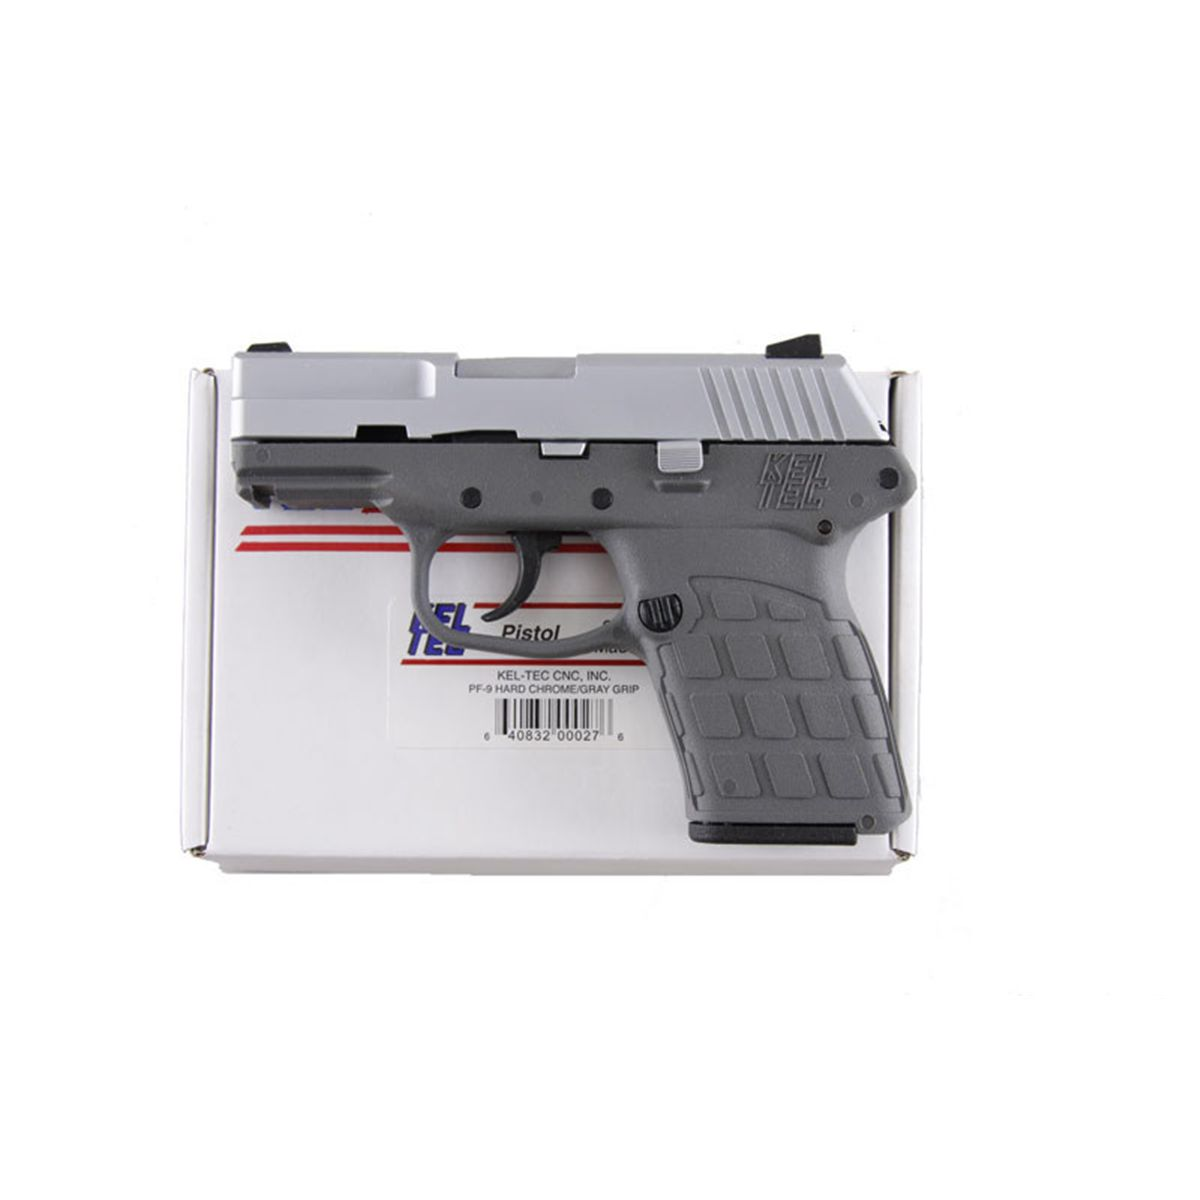 Kel Tec PF9 Cal 9mm SN:R3W13 Double action only (DAO